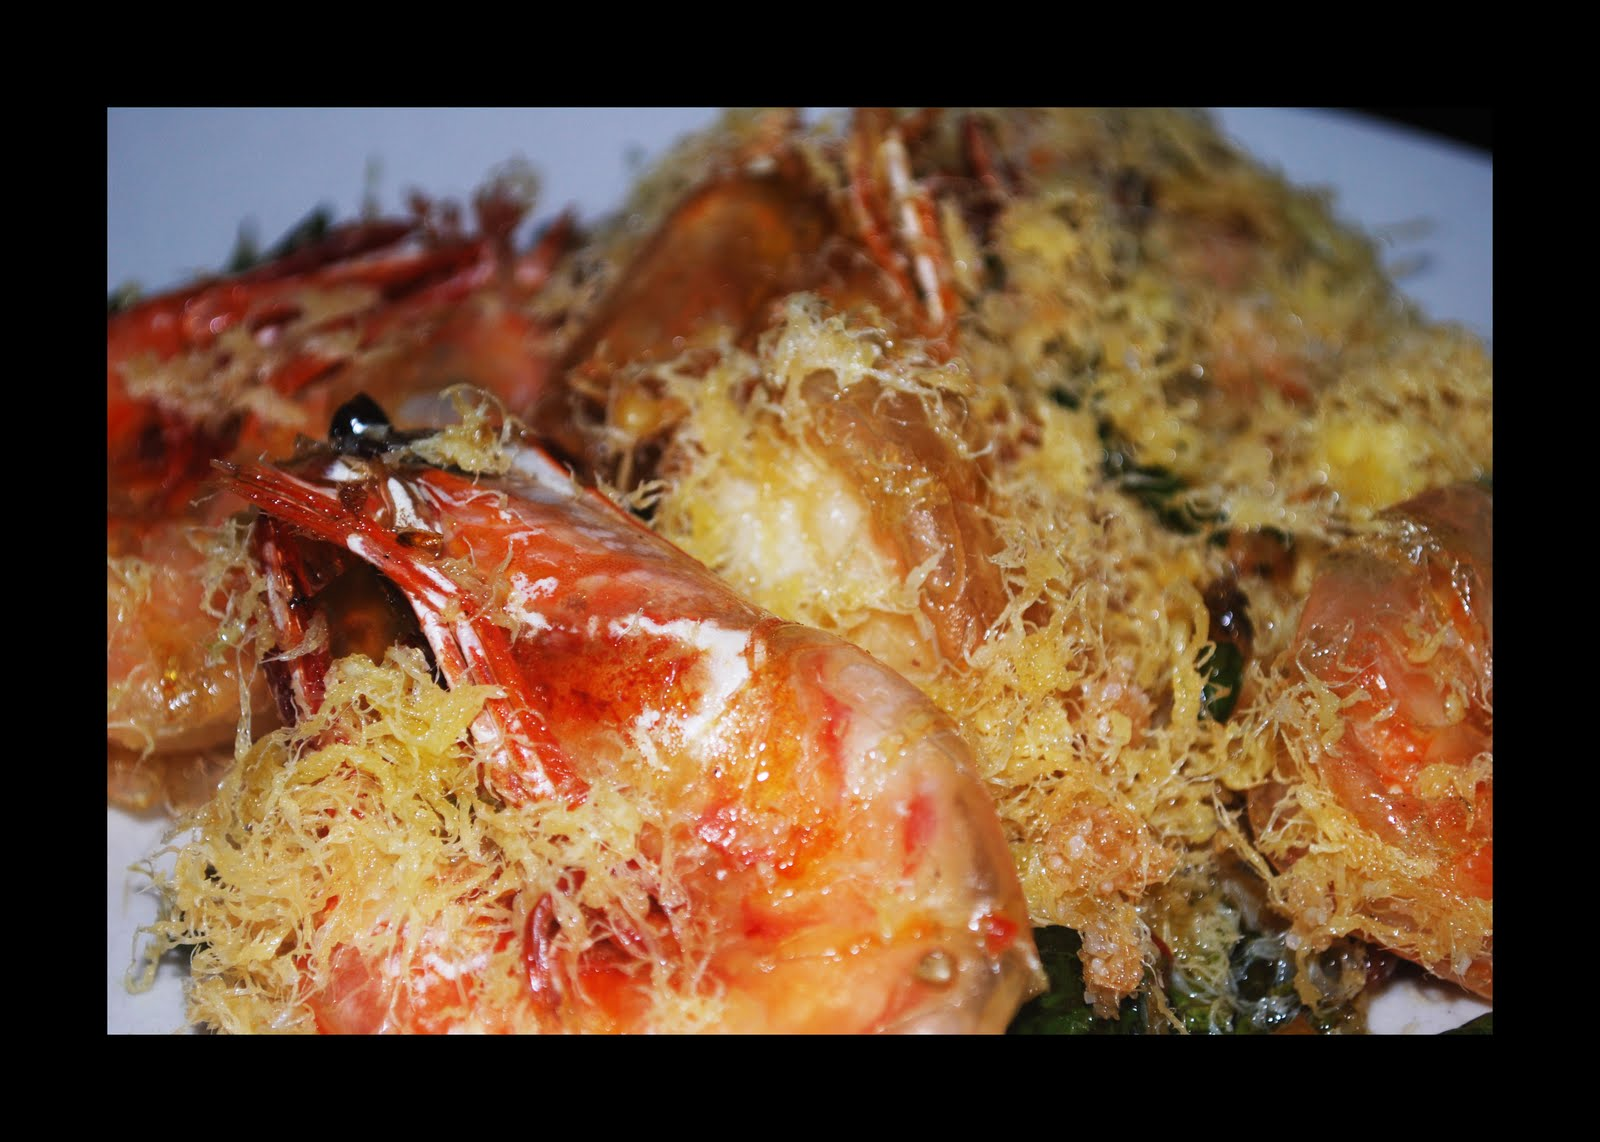 WHAT'S GOING ON?: Butter Prawn vs Roasted Duck